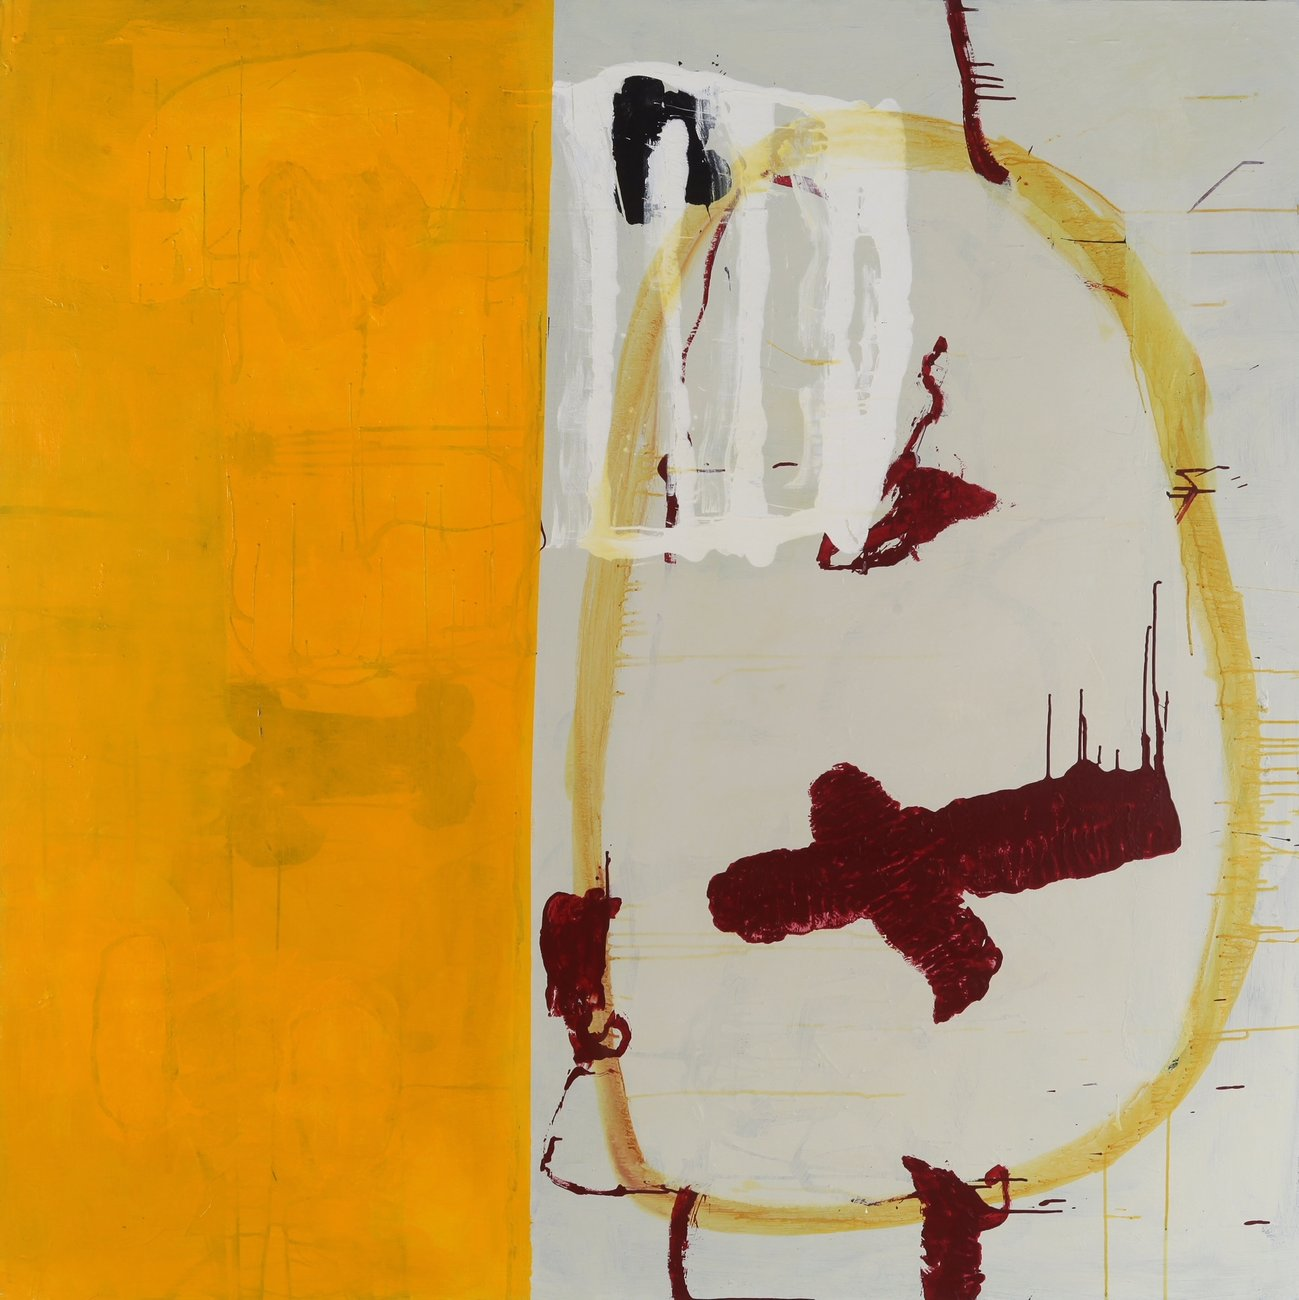 painting half covered in yellow with red and white abstract shapes